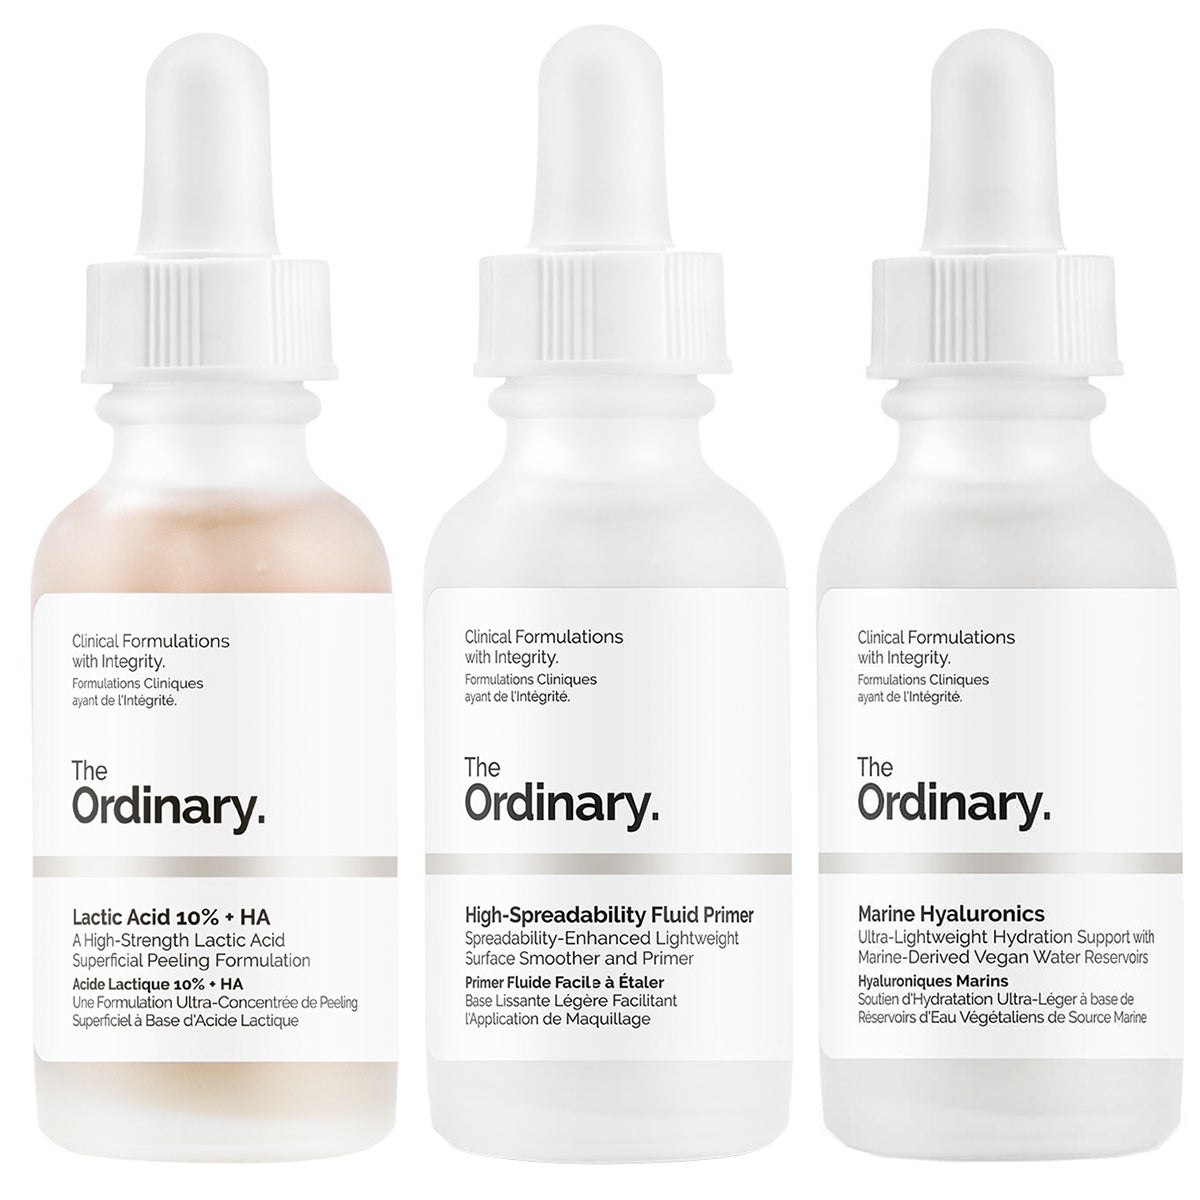 The Ordinary. The Ordinary Set of Actives - Starter Kit For All Skintypes